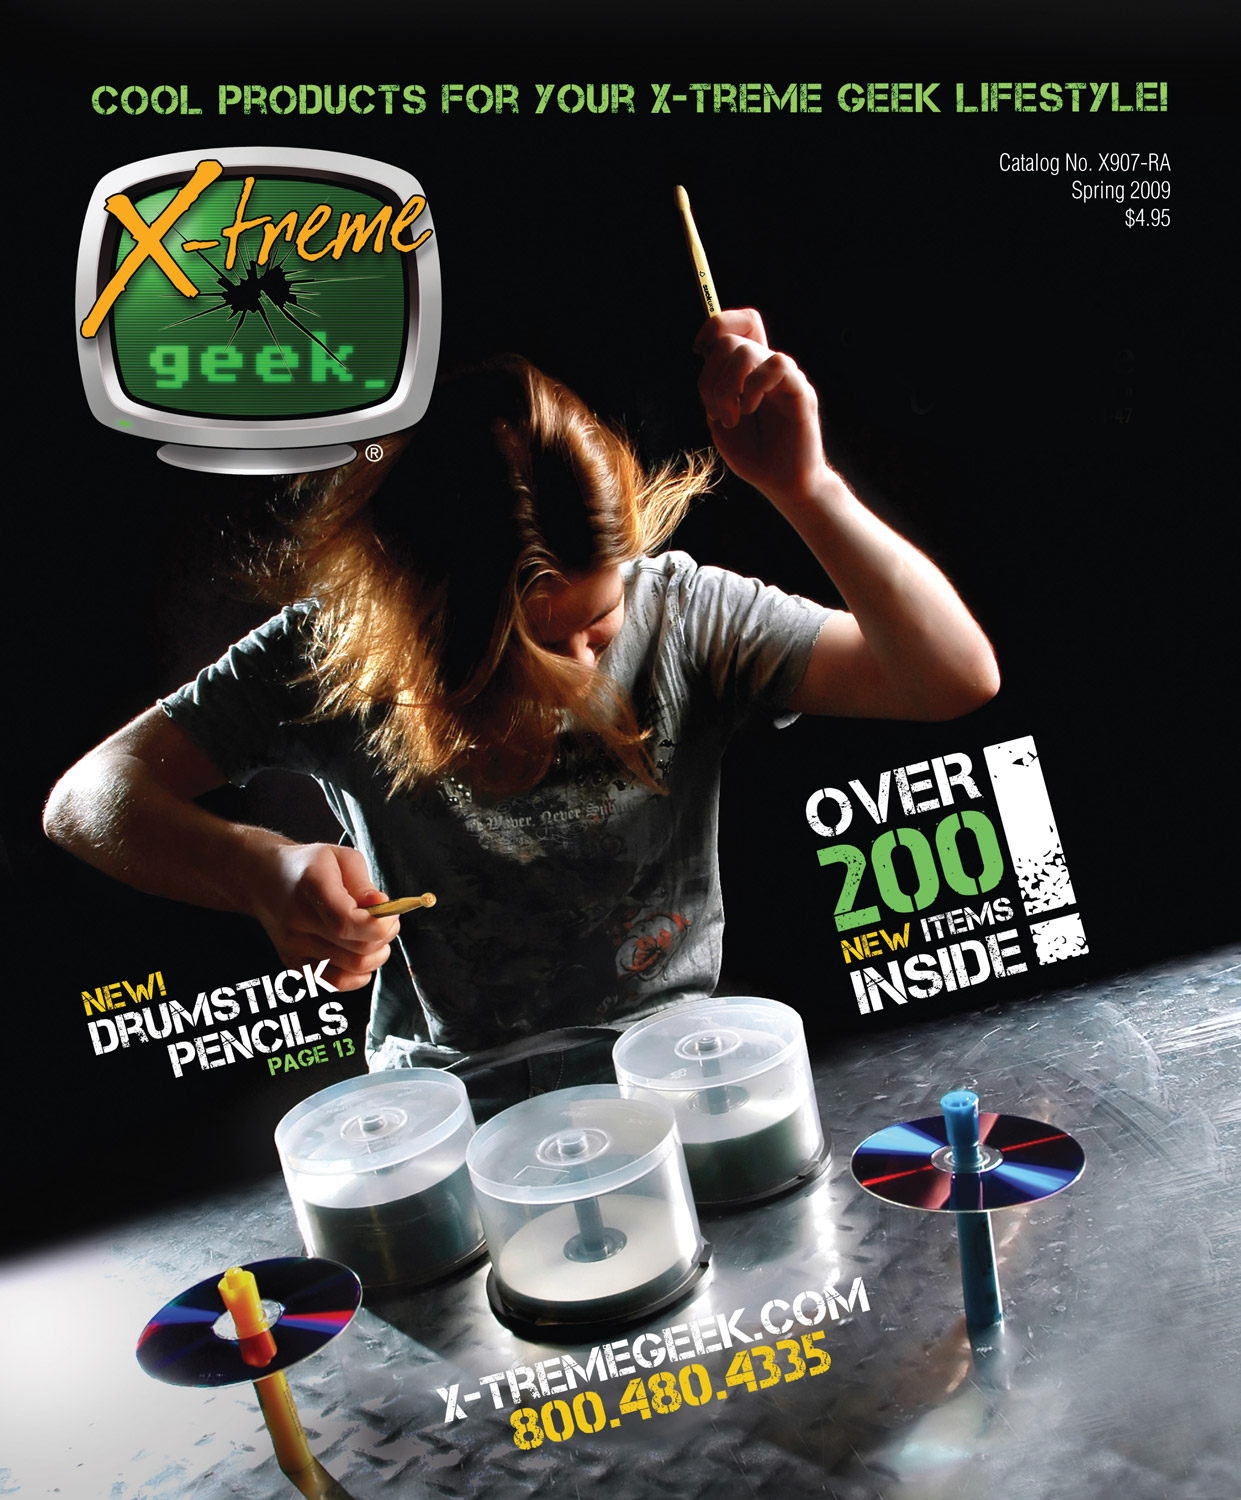 2009. X-treme Geek catalog cover. Art direction, photography, and design. © E-filliate Inc.